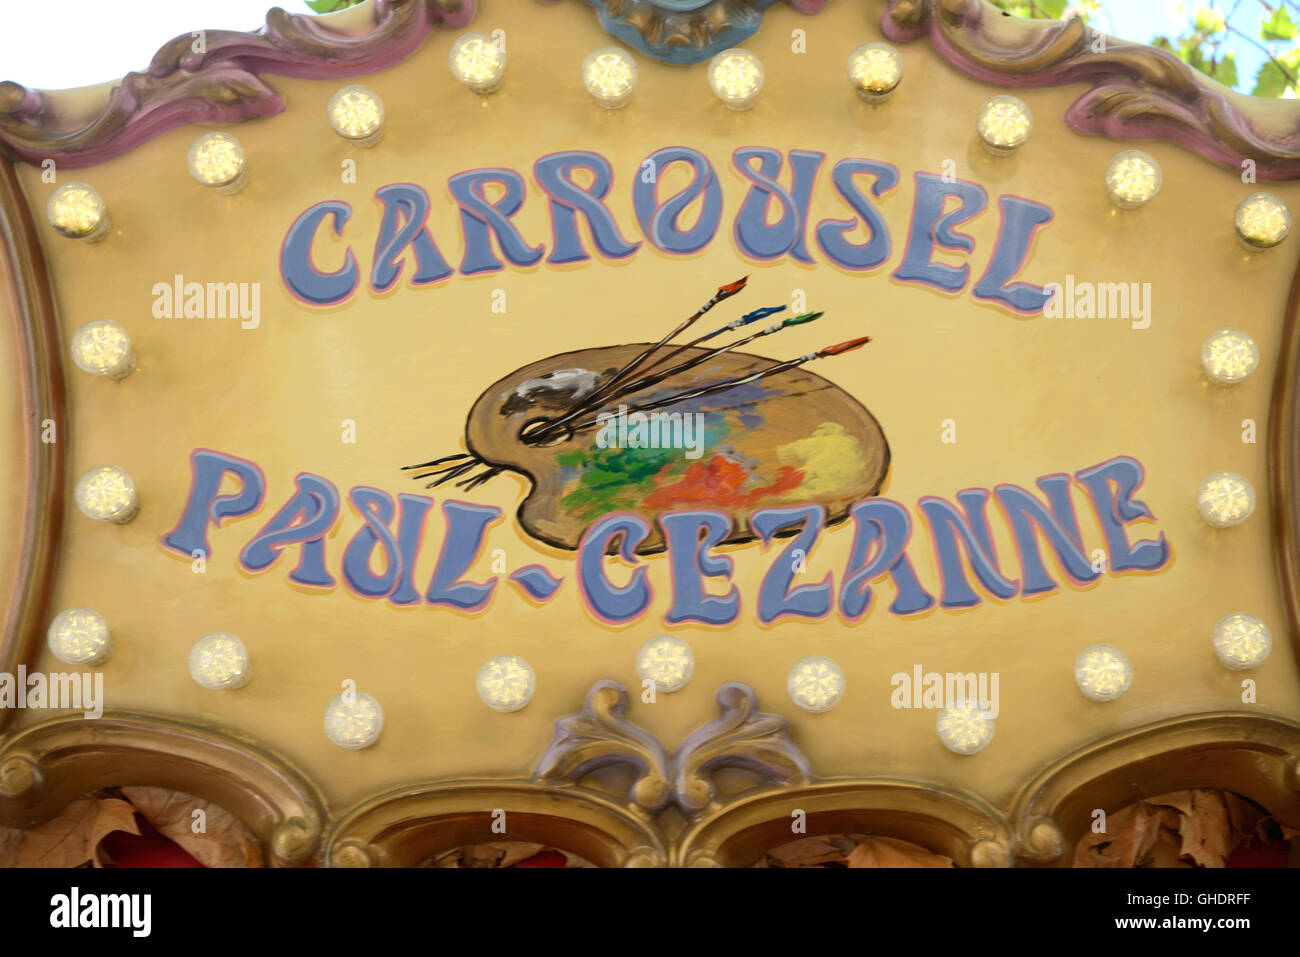 Paul Cezanne Artist's Palette Painted on Carousel or Carrousel Aix-en-Provence France - Stock Image